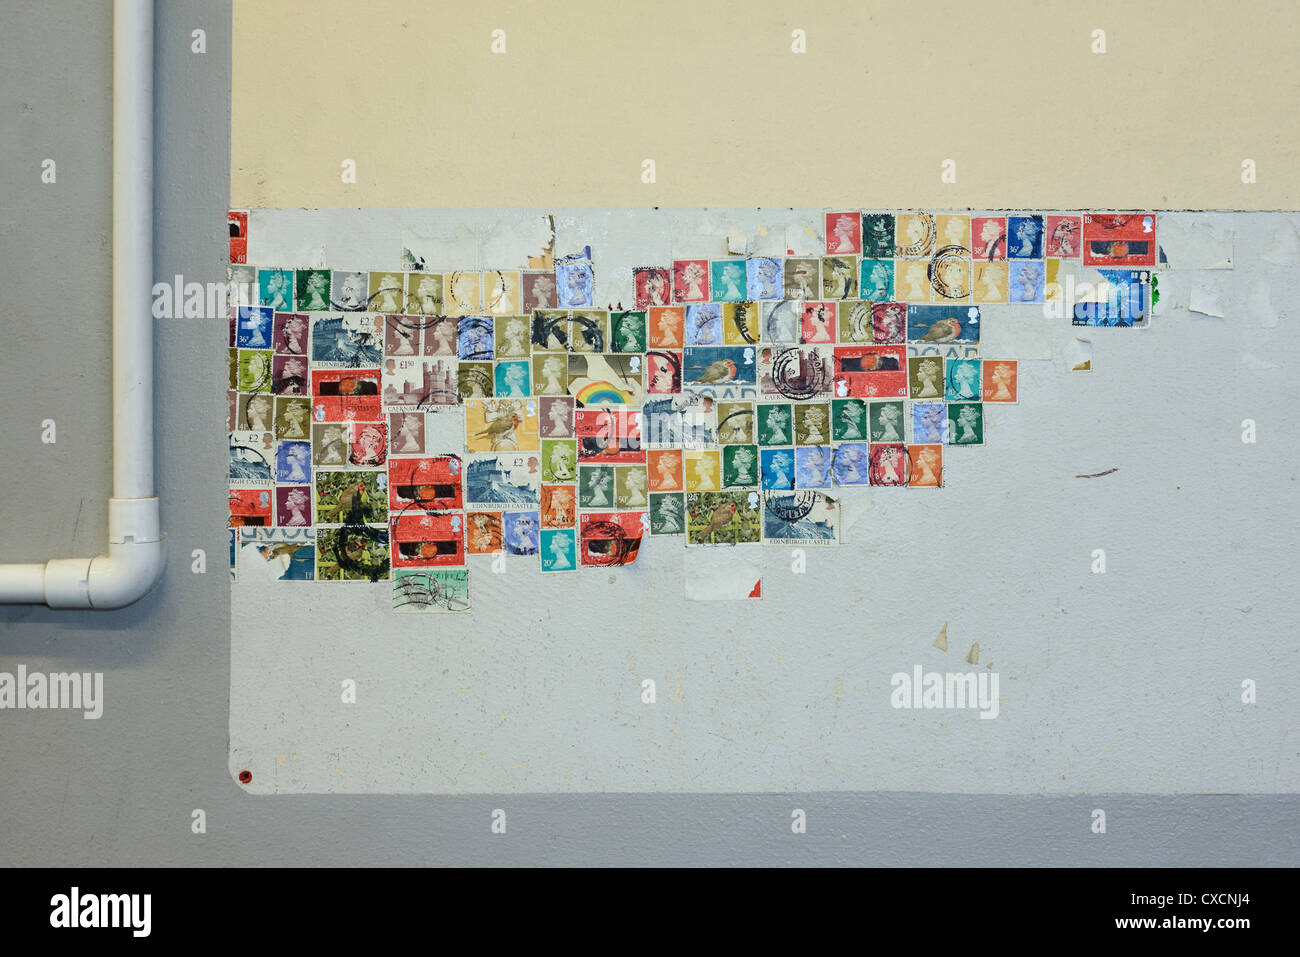 A collection of UK stamps stuck to a wall - Stock Image